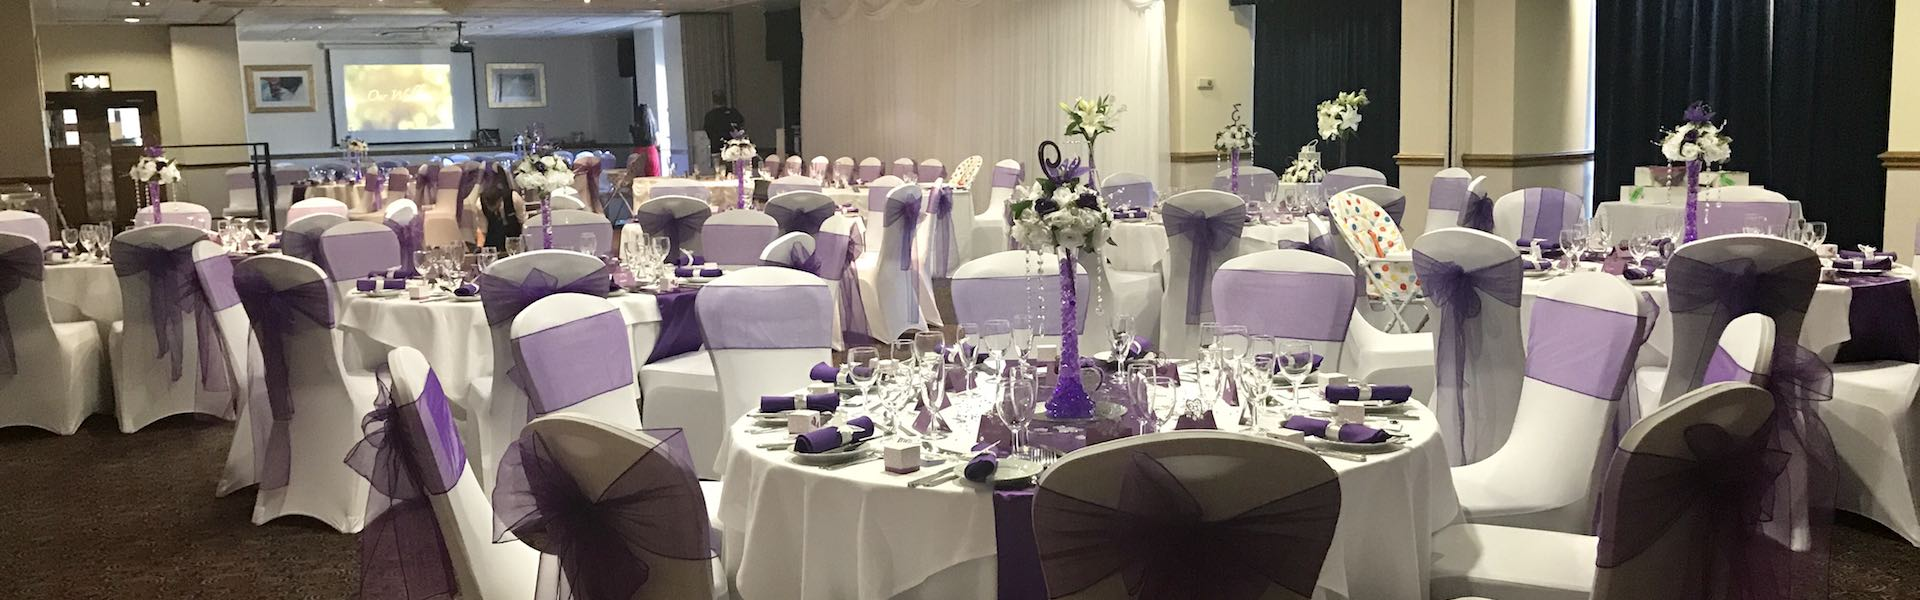 Manx Wedding Palace Hotel